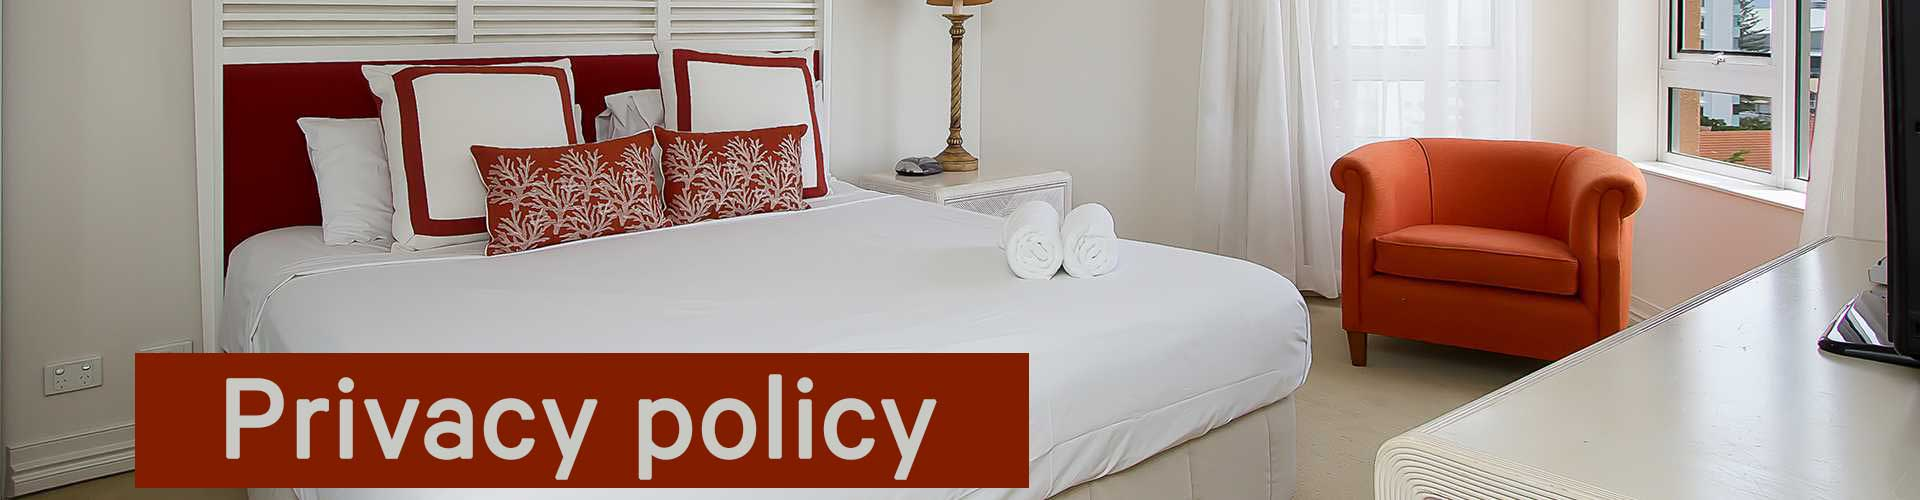 Buy mattress privacy policies- springtek